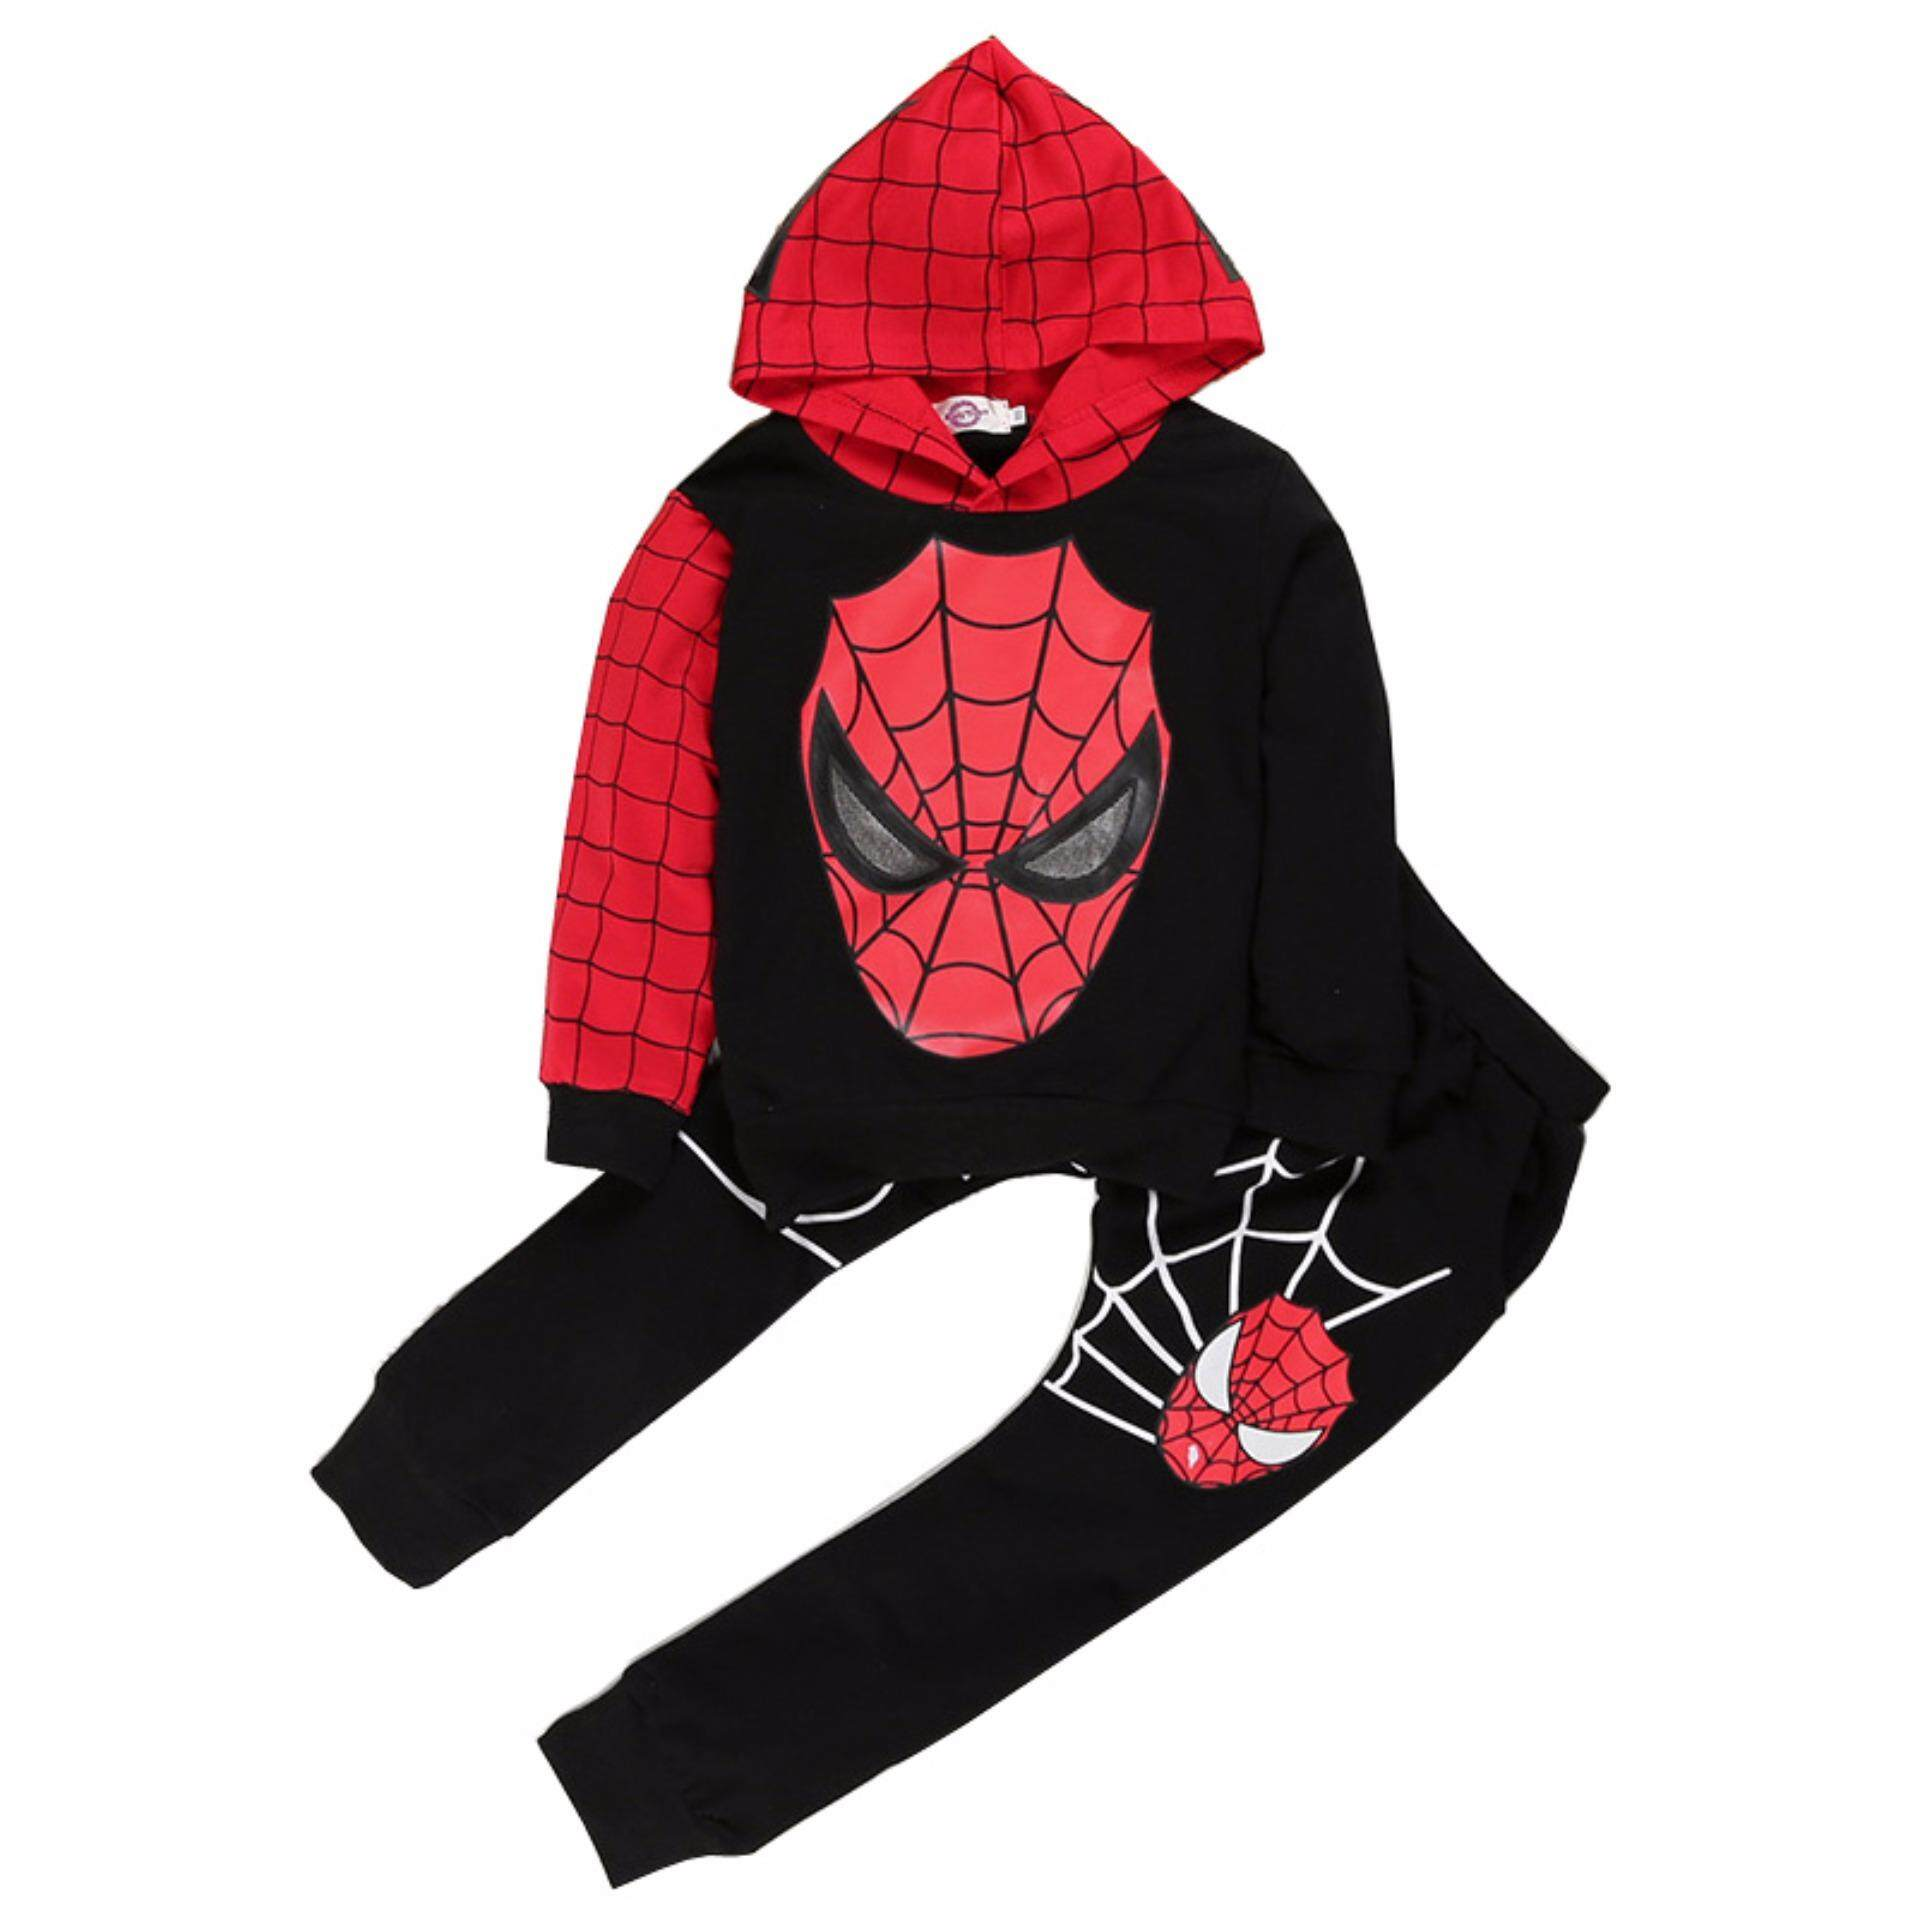 Encontrar Boys Spiderman Hoodies + Pants Sets Children Cartoon Suit 90-120cm By Encontrar.